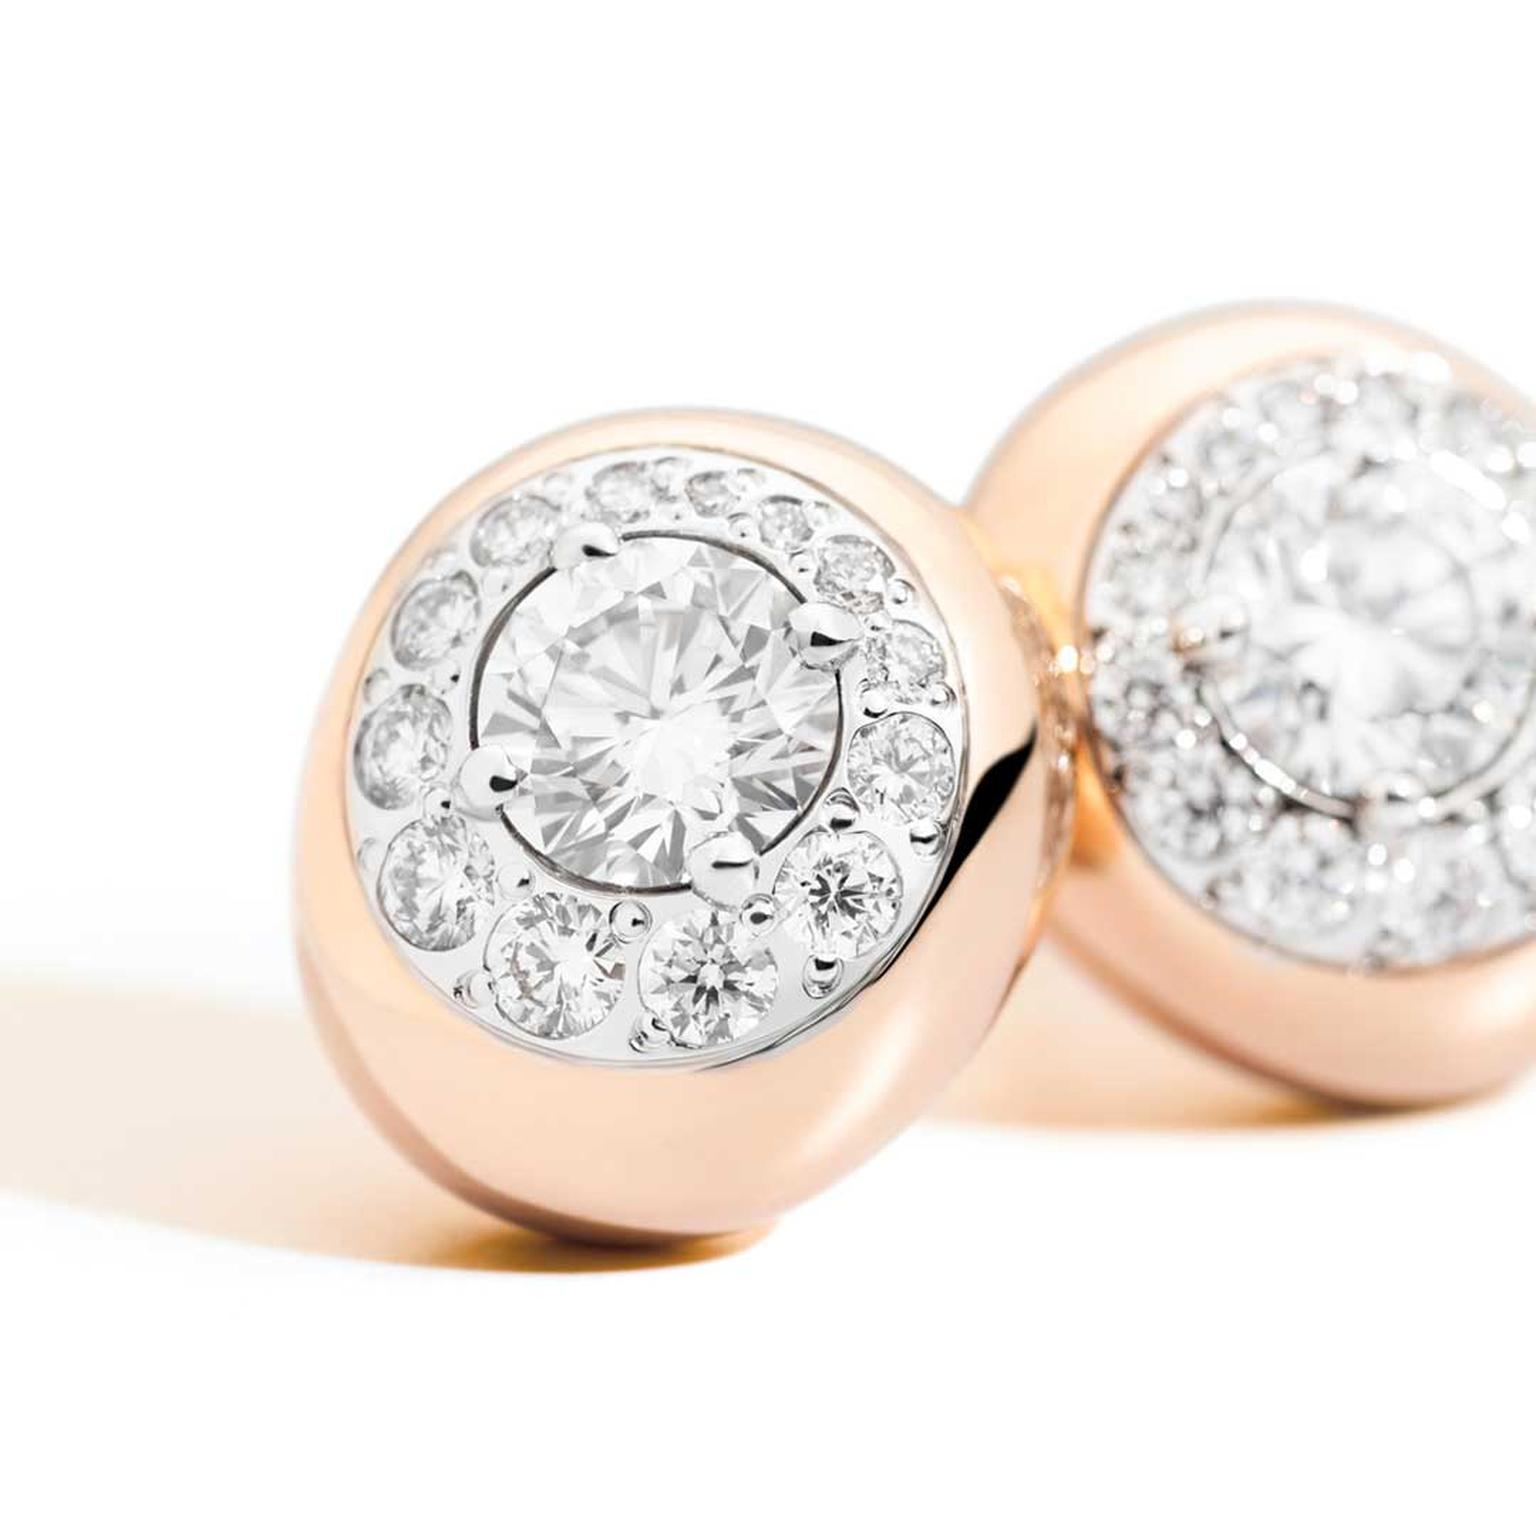 Pomellato Nuvola rose gold diamond earrings